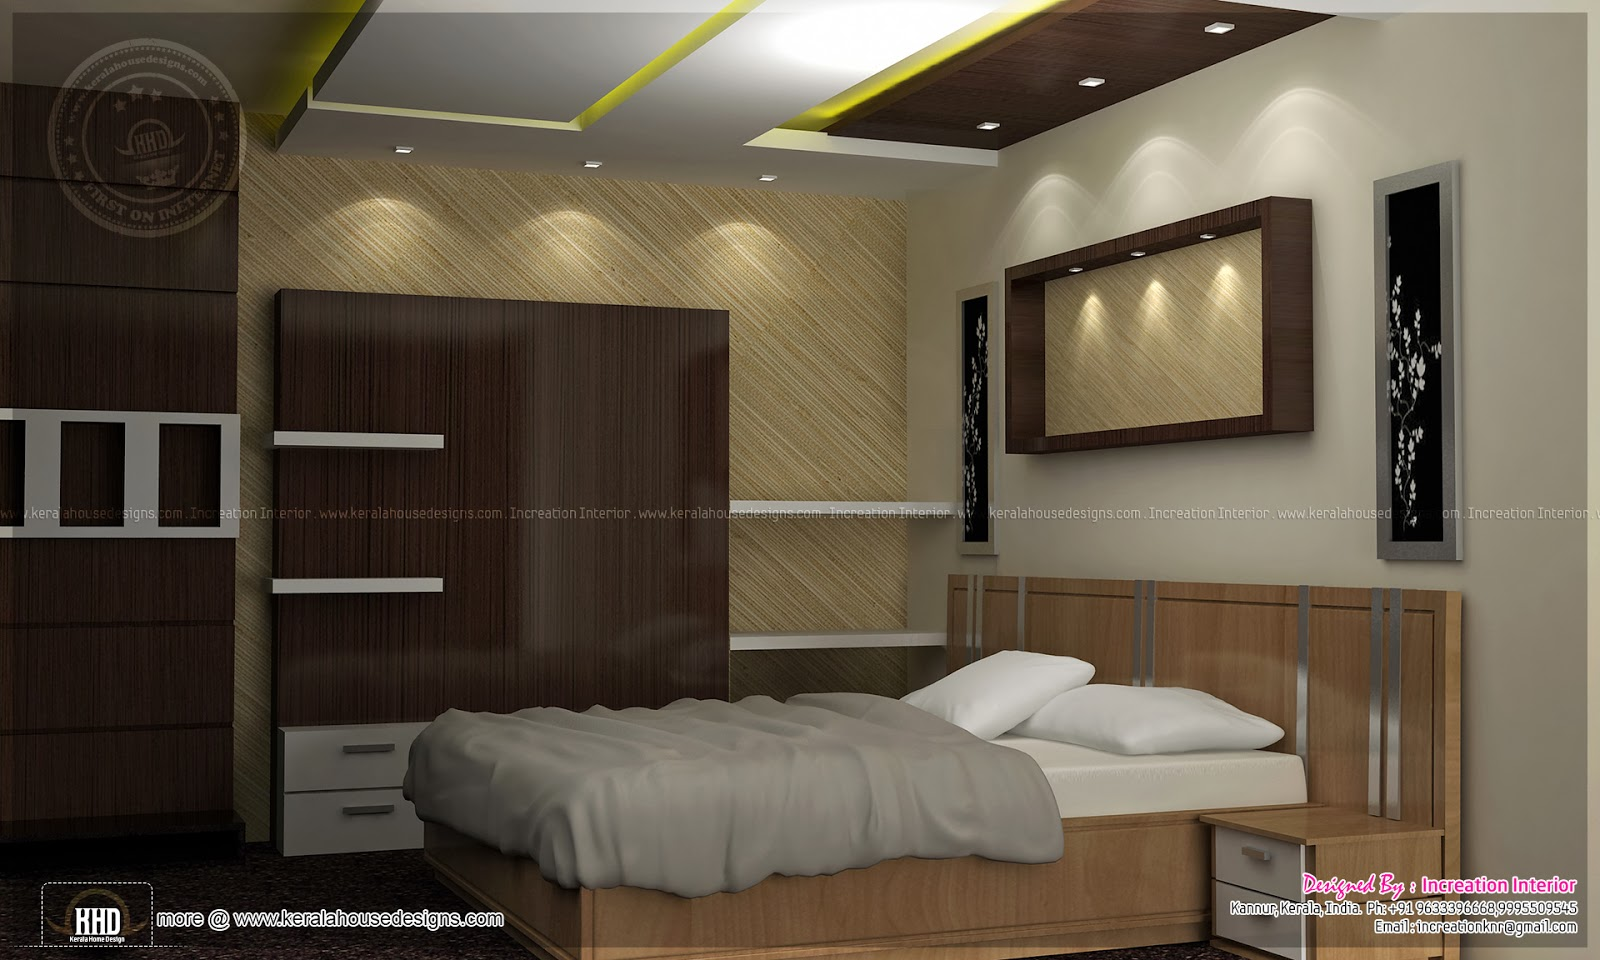 Bedroom interior designs kerala home design and floor plans for Bedroom interior design india